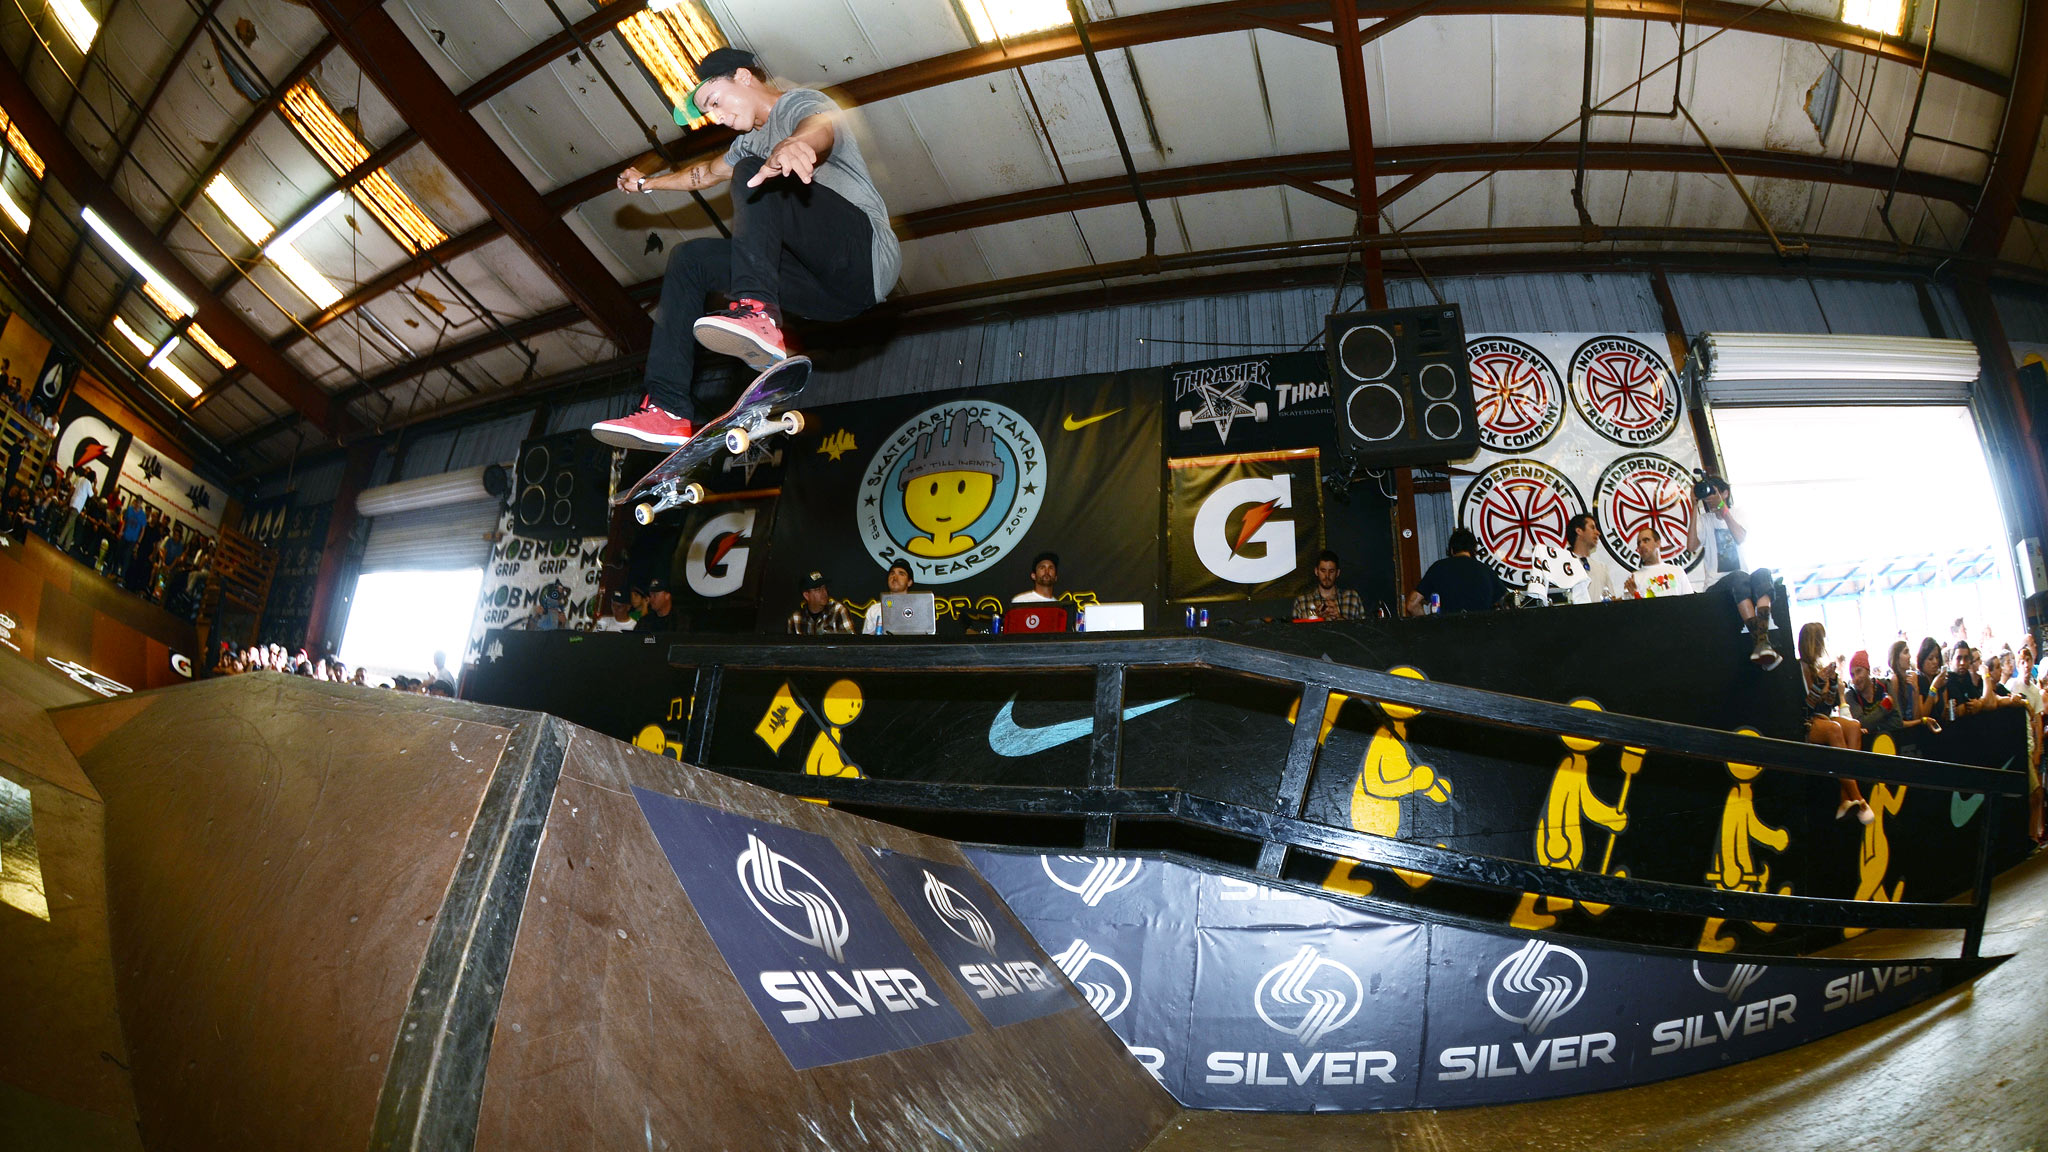 Nyjah Huston was on point the entire weekend and received a hard earned 2nd place with this fakie flip over the funbox.